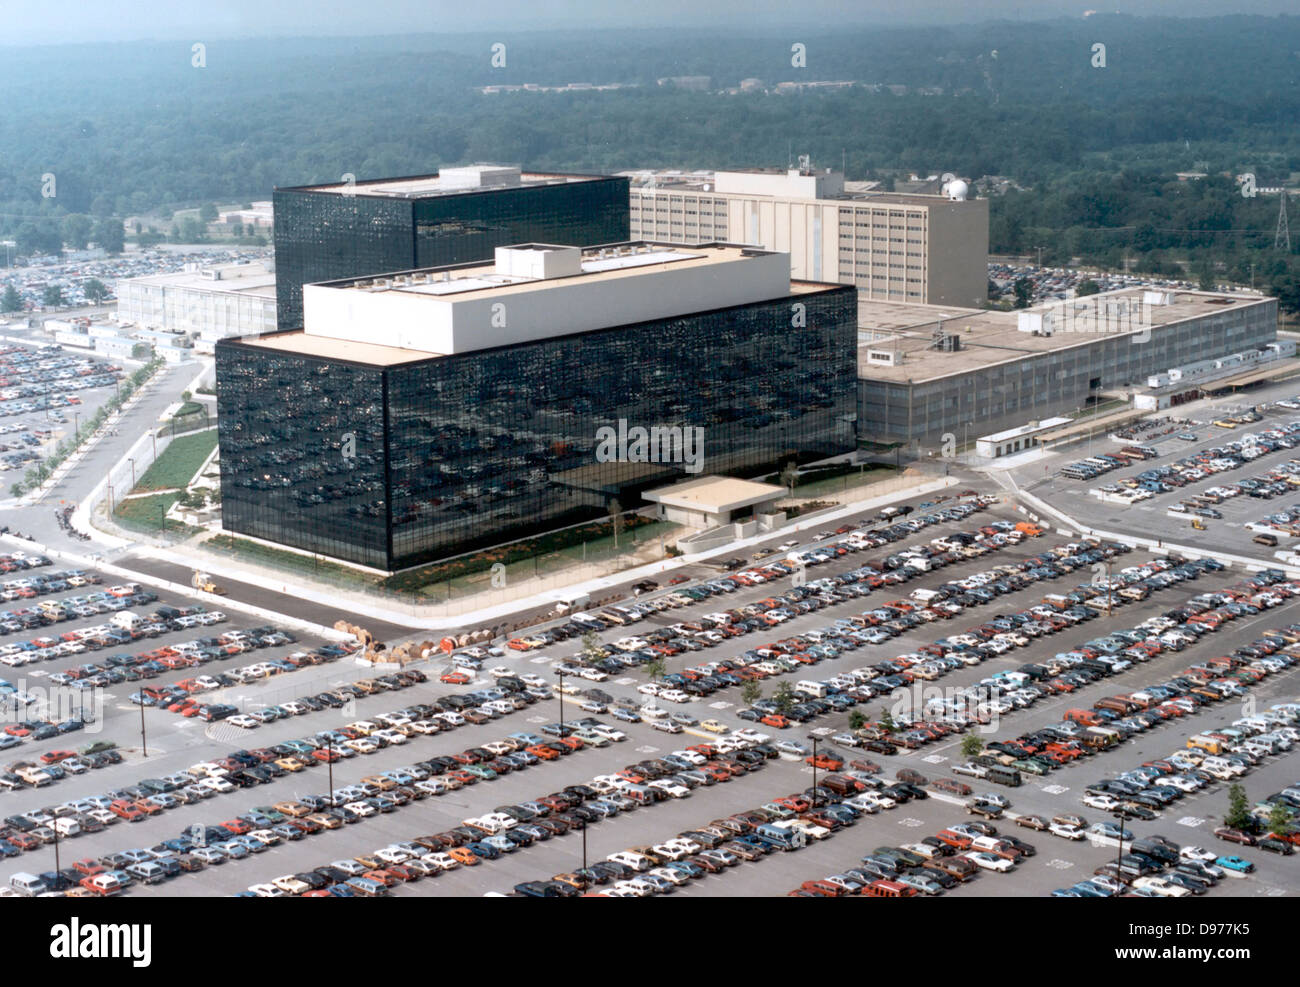 Aerial view of the headquarters of the National Security Agency or NSA in Fort Meade, MD. - Stock Image